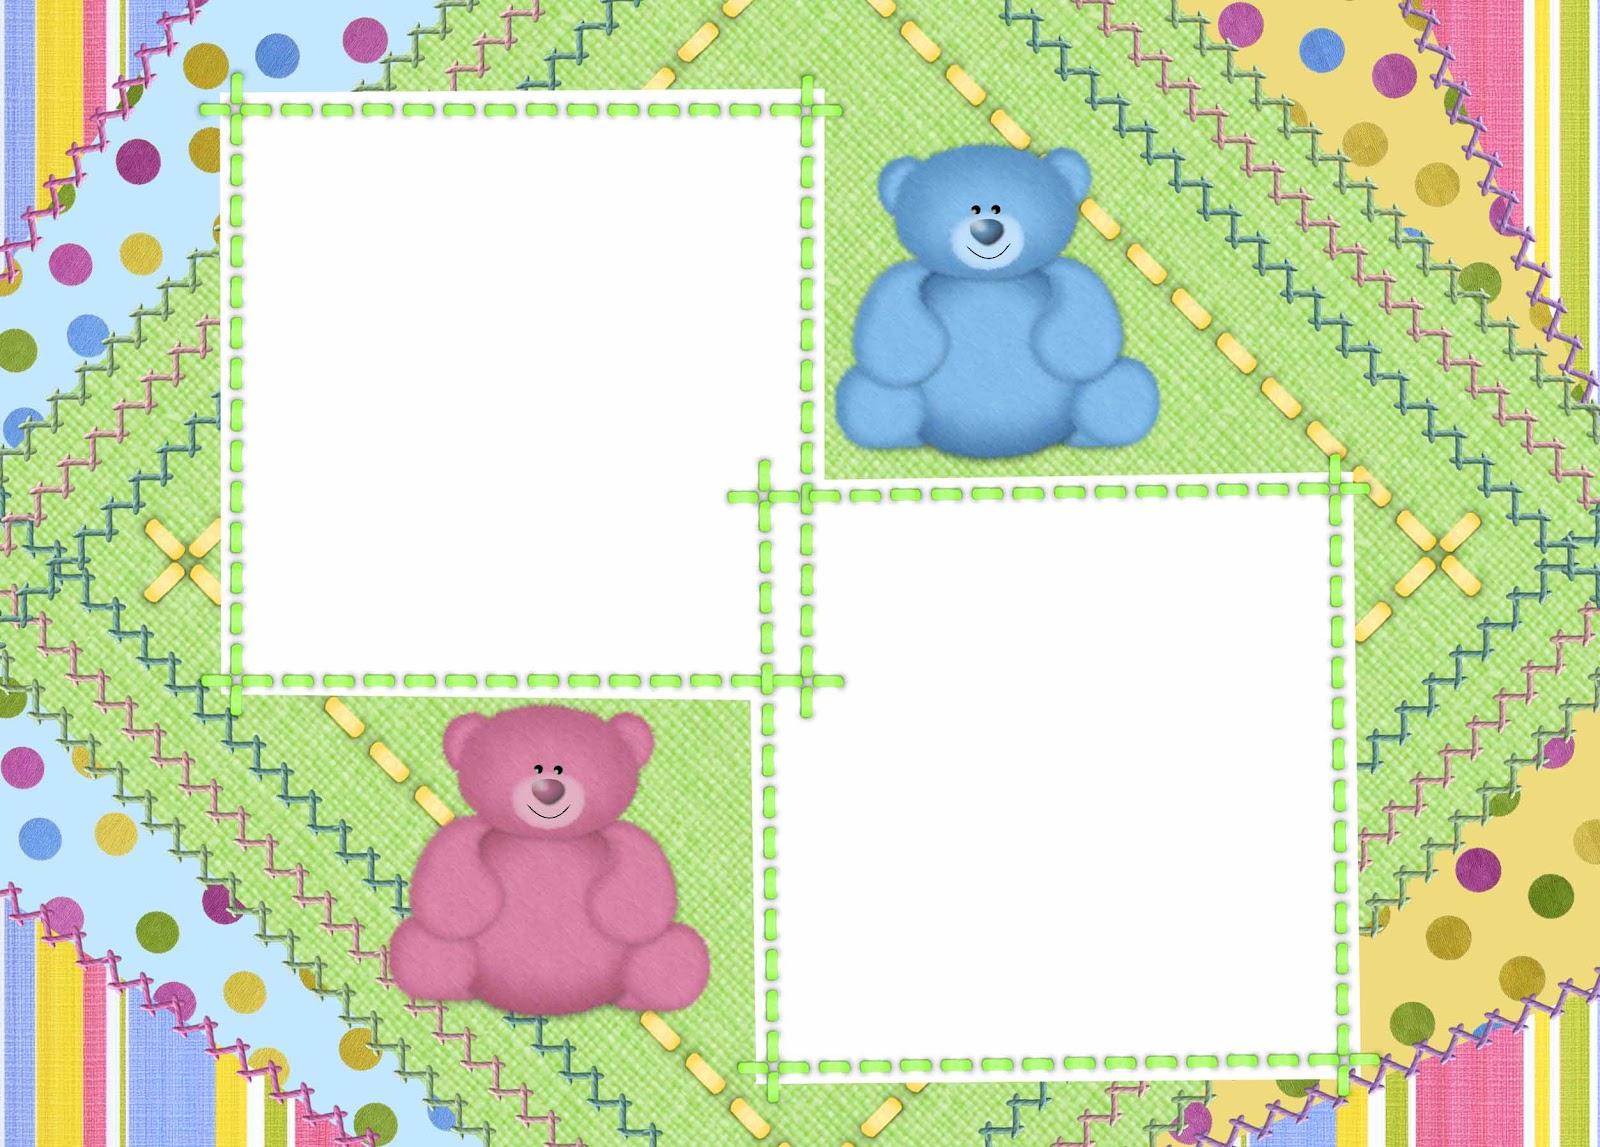 Baby Frames Wallpapers High Quality | Download Free